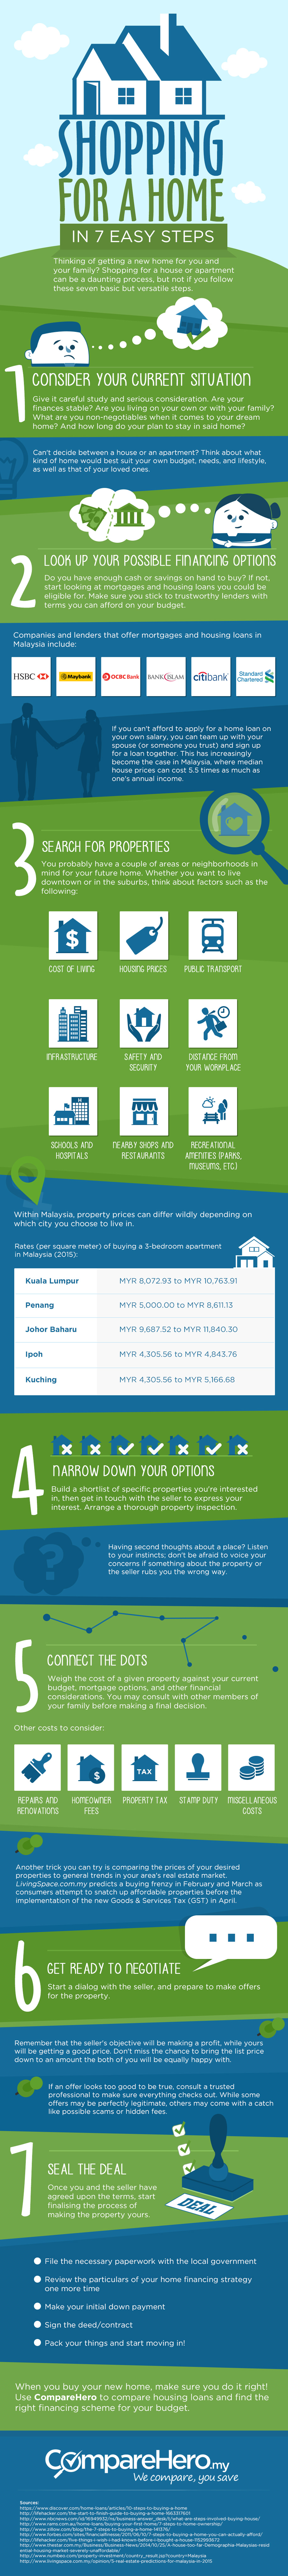 7 Steps to Shopping for a Home in Malaysia